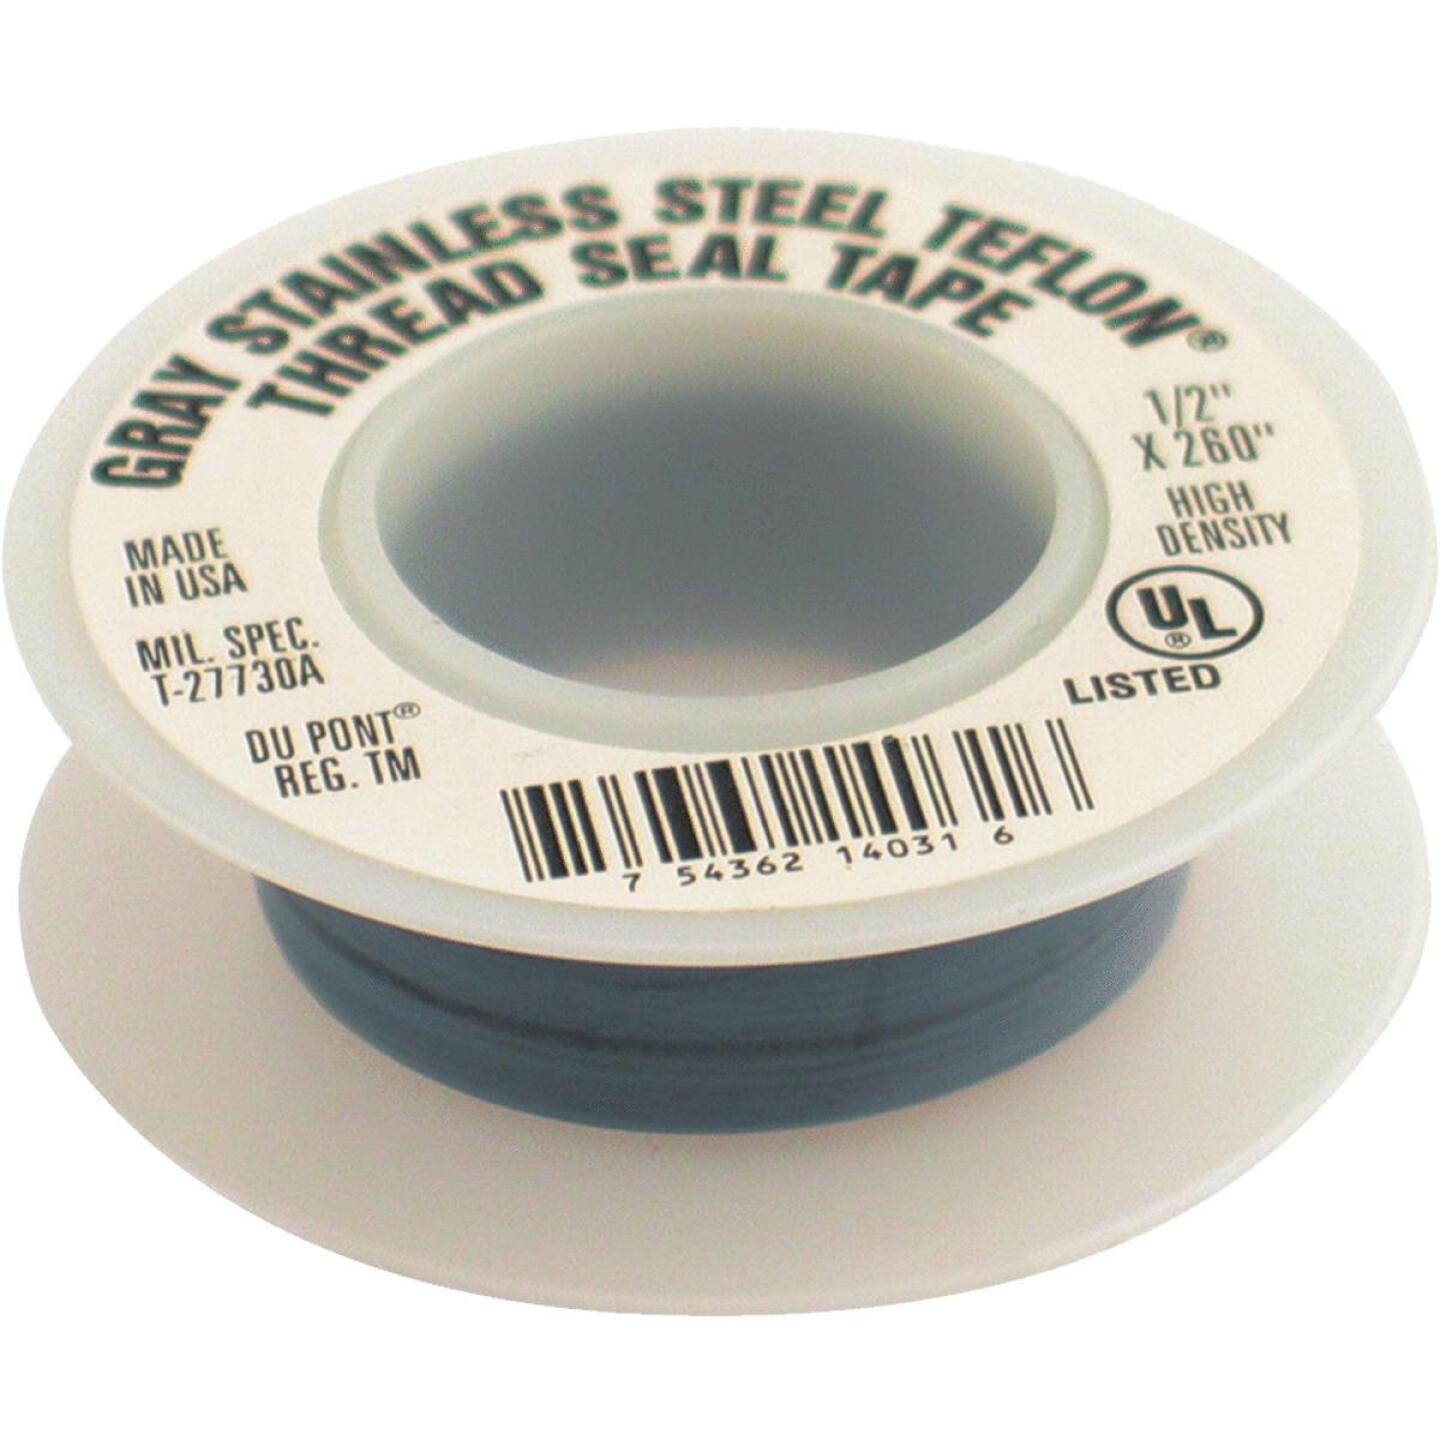 PLUMB-EEZE 1/2 In. x 260 In. Gray Non-Stick Coating Thread Seal Tape Image 1